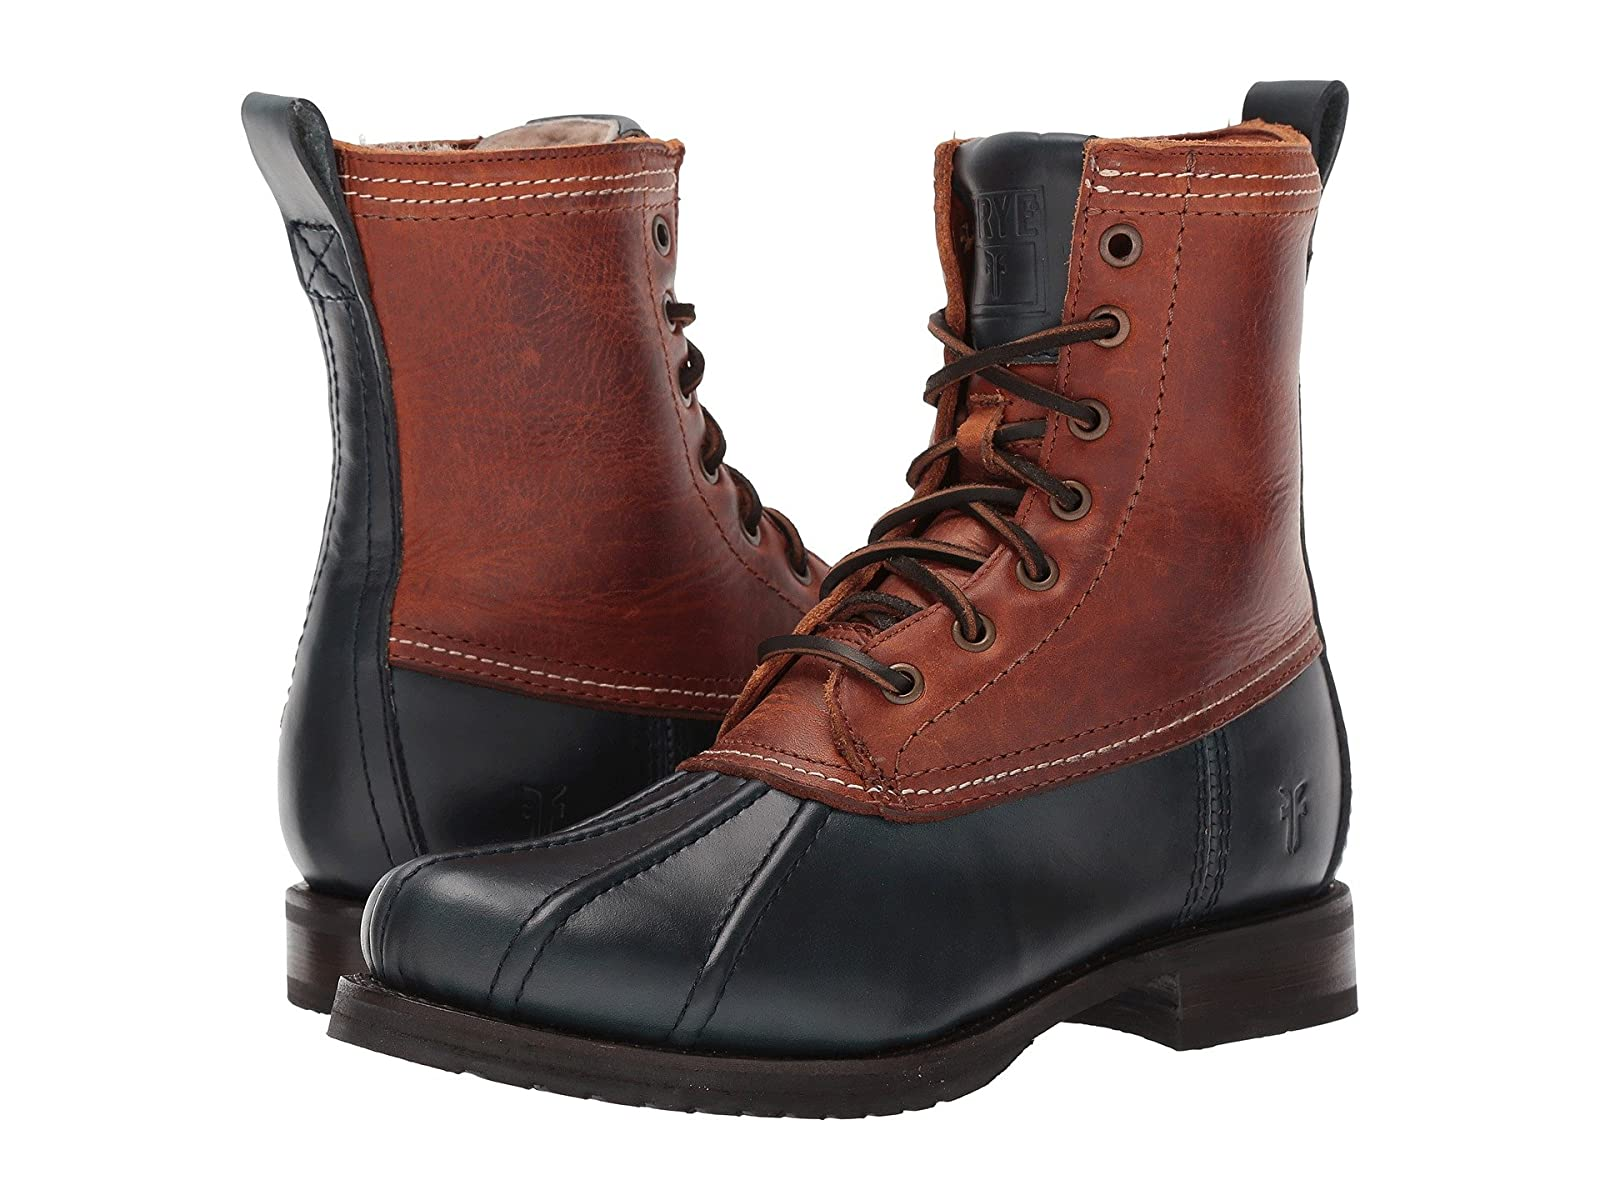 Frye Veronica Duck BootCheap and distinctive eye-catching shoes